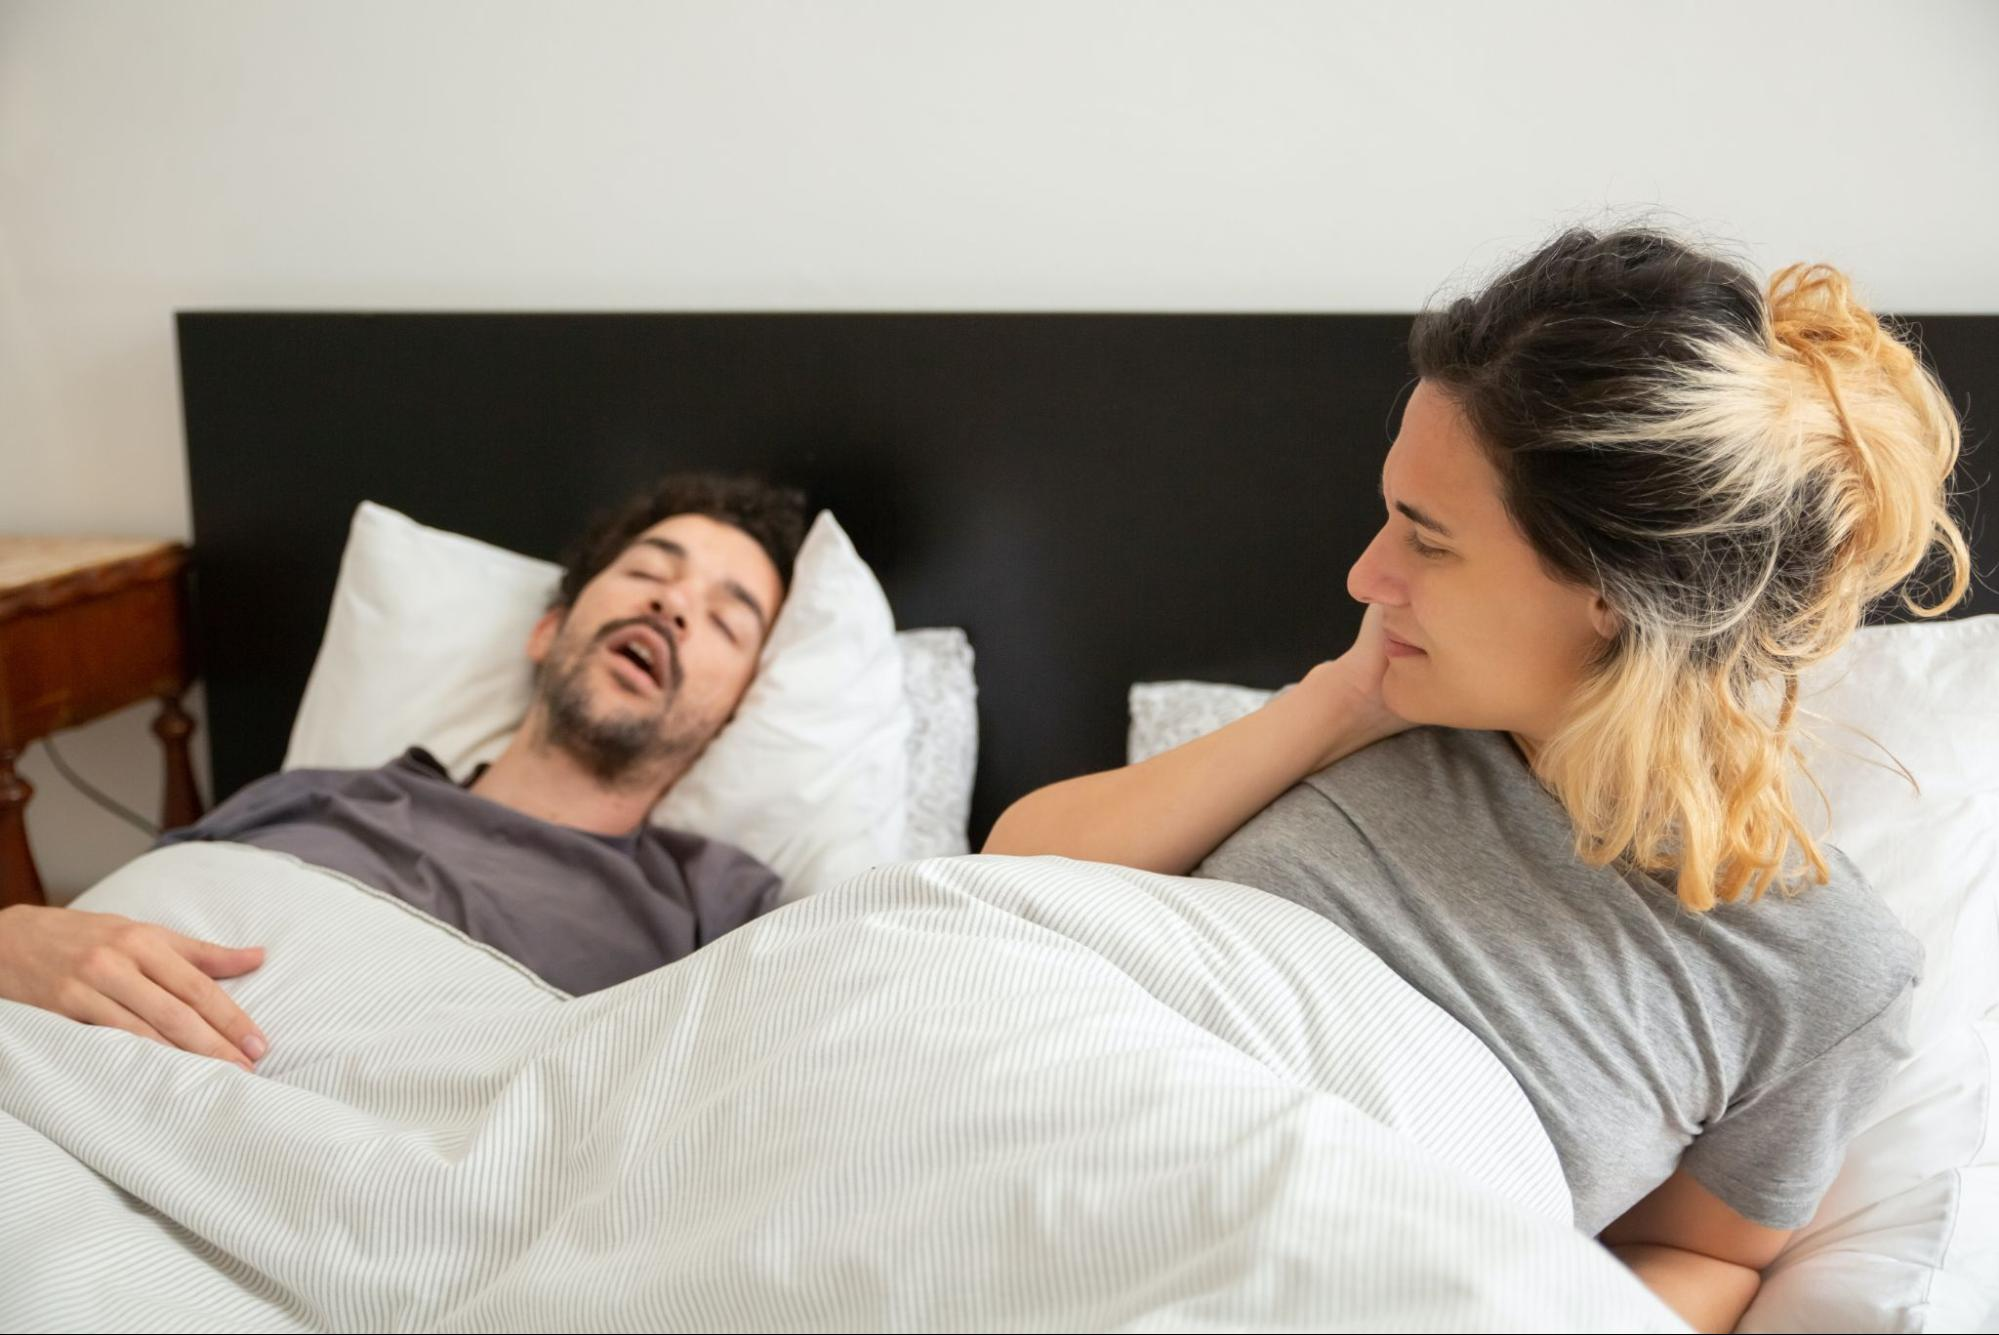 a girl disturbed by her partner's snoring